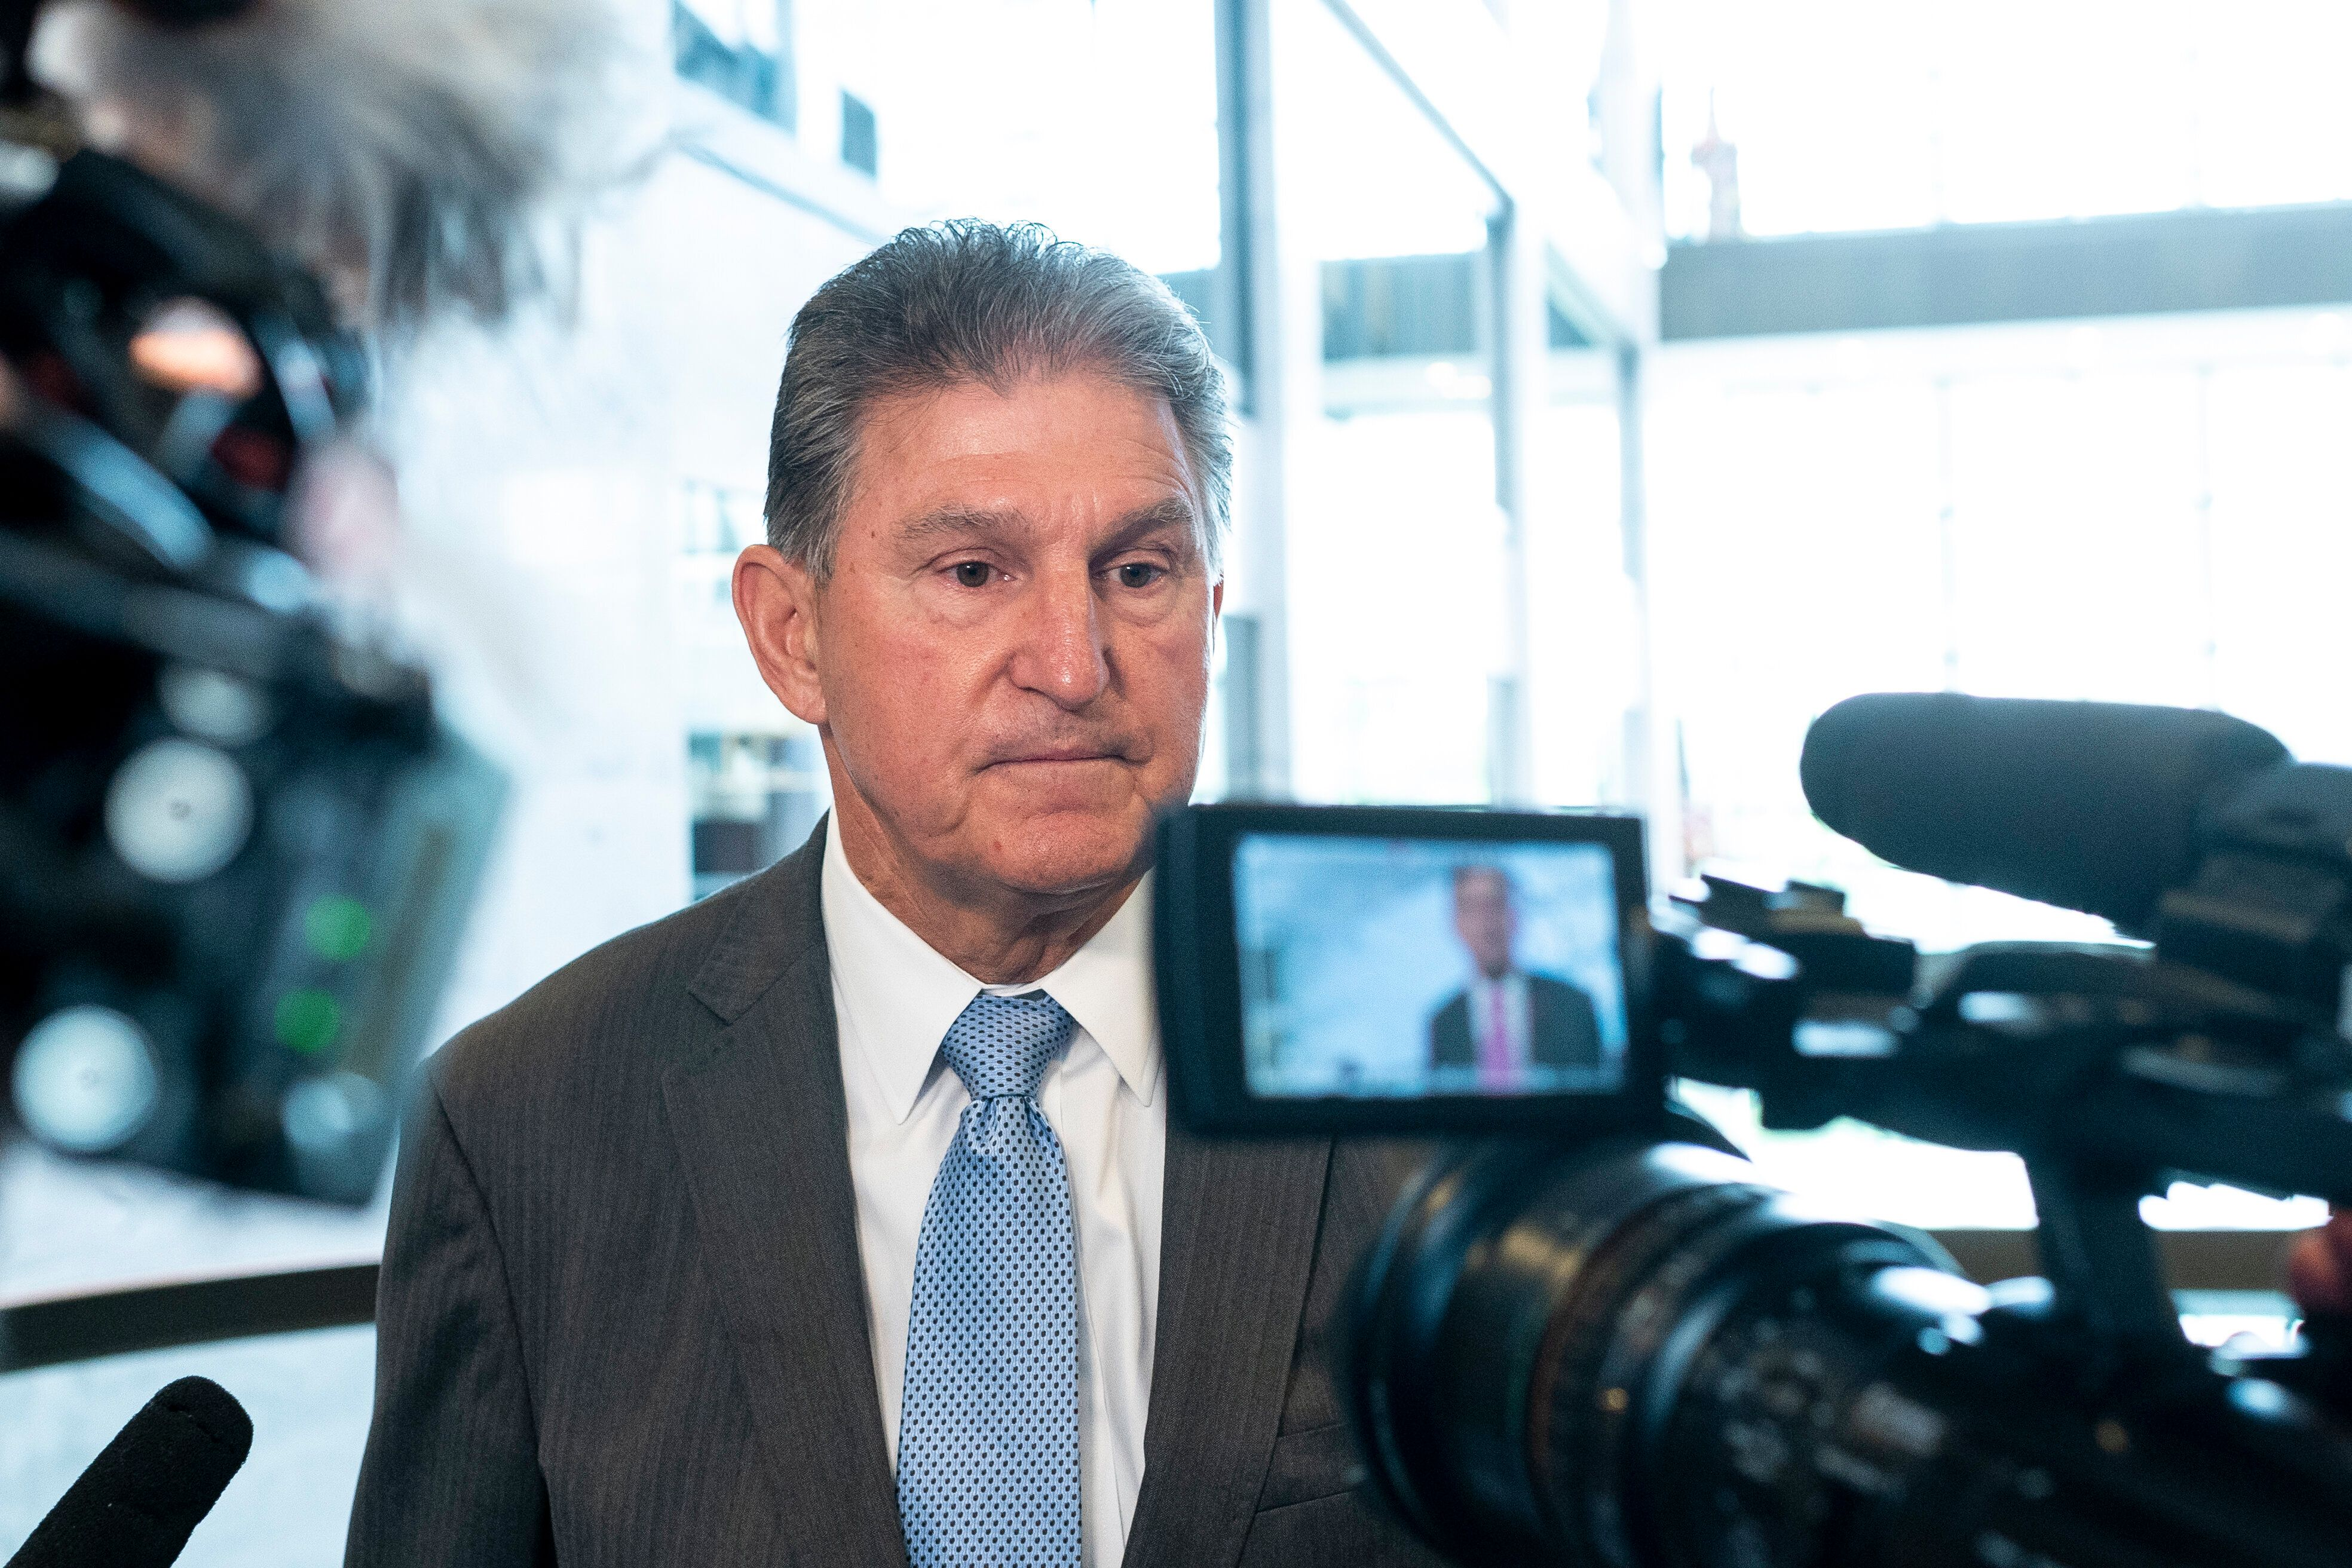 Sen. Joe Manchin, D-W. Va., speaks with reporters after his virtual meeting with the leaders of several civil rights organiza